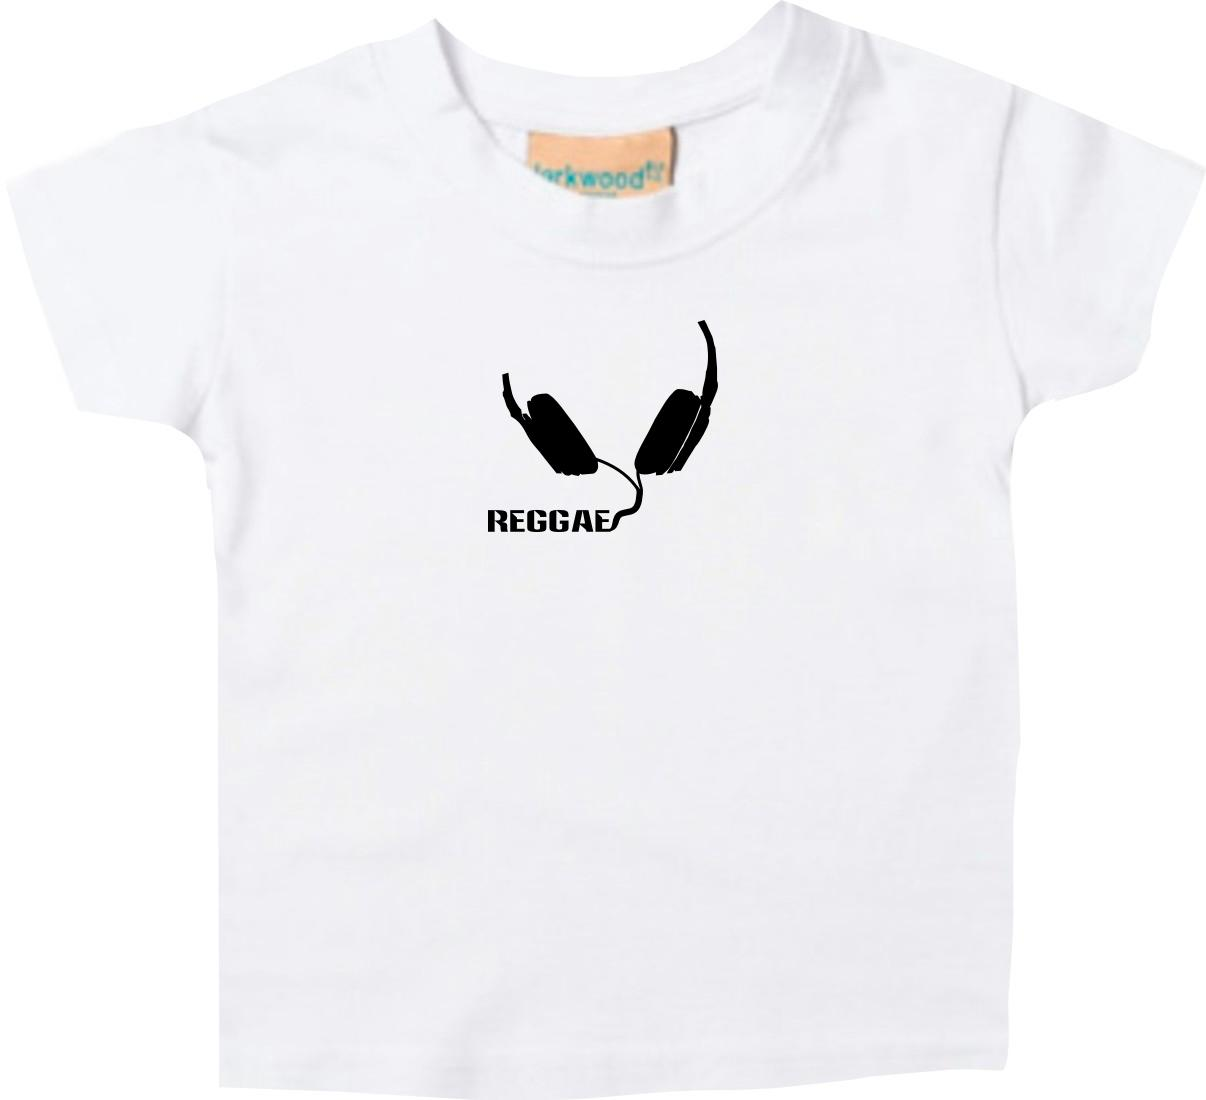 Kinder-T-Shirt-Reggae-Musik-Kopfhoerer-Headphone-Music-Club-Kult-Club-Kult